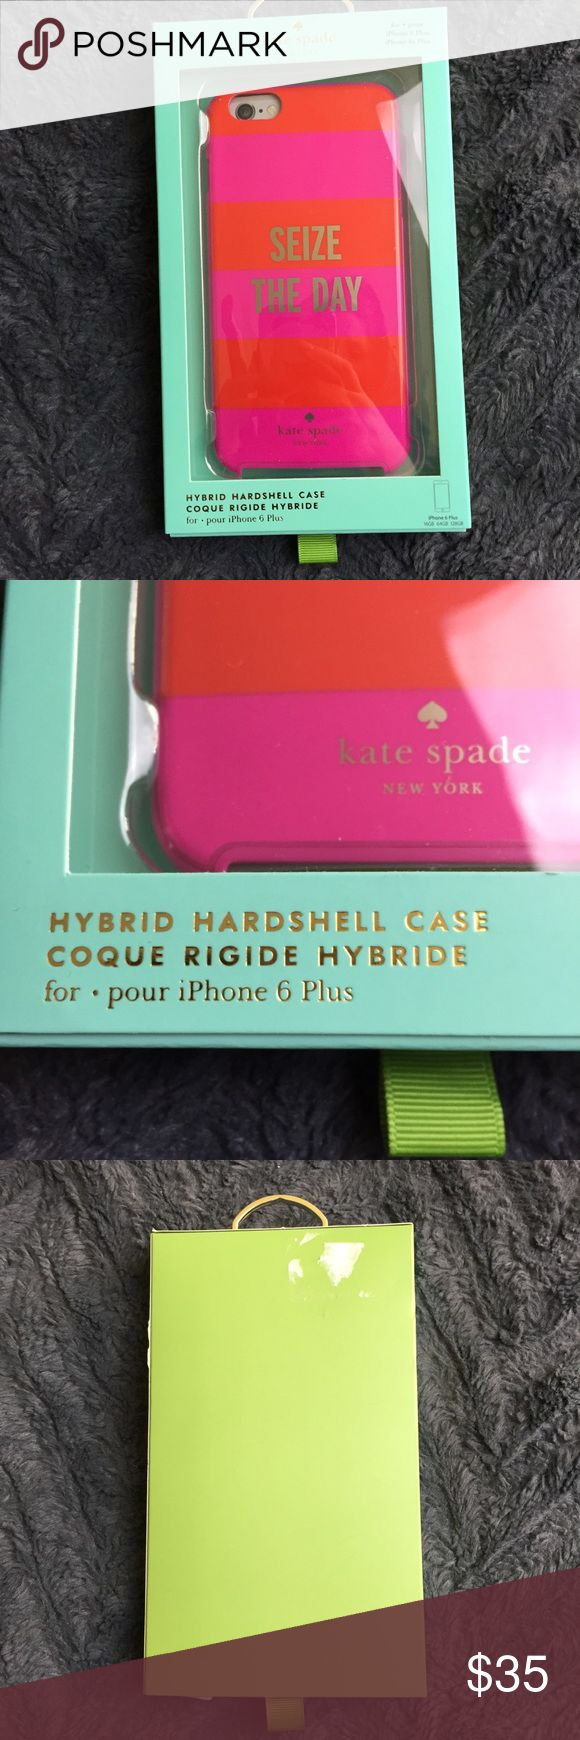 """Kate Spade Seize The Day iPhone 6 Plus Hard Case Brand new in box Kate Spade New York """"Seize the Day"""" gold lettered pink and red striped iPhone 6 Plus hybrid hardshell phone case. -16gb/64gb/128gb kate spade Accessories Phone Cases"""